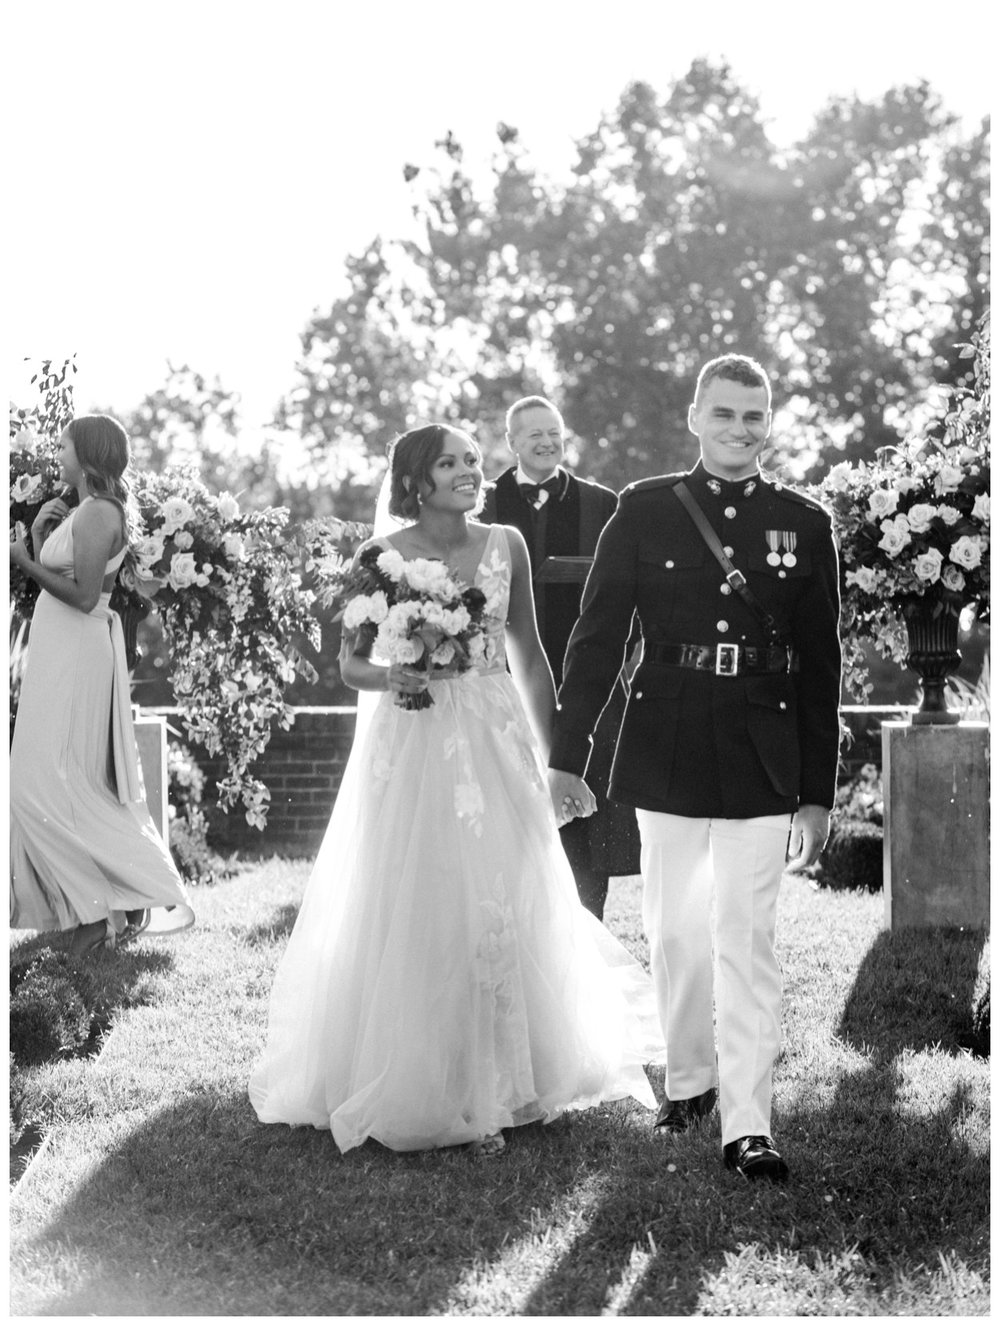 Sun drenched fall wedding in shades of pink at Oxon Hill Manor in Maryland after ceremony joy by Washington DC fine art photographer Lissa Ryan Photography